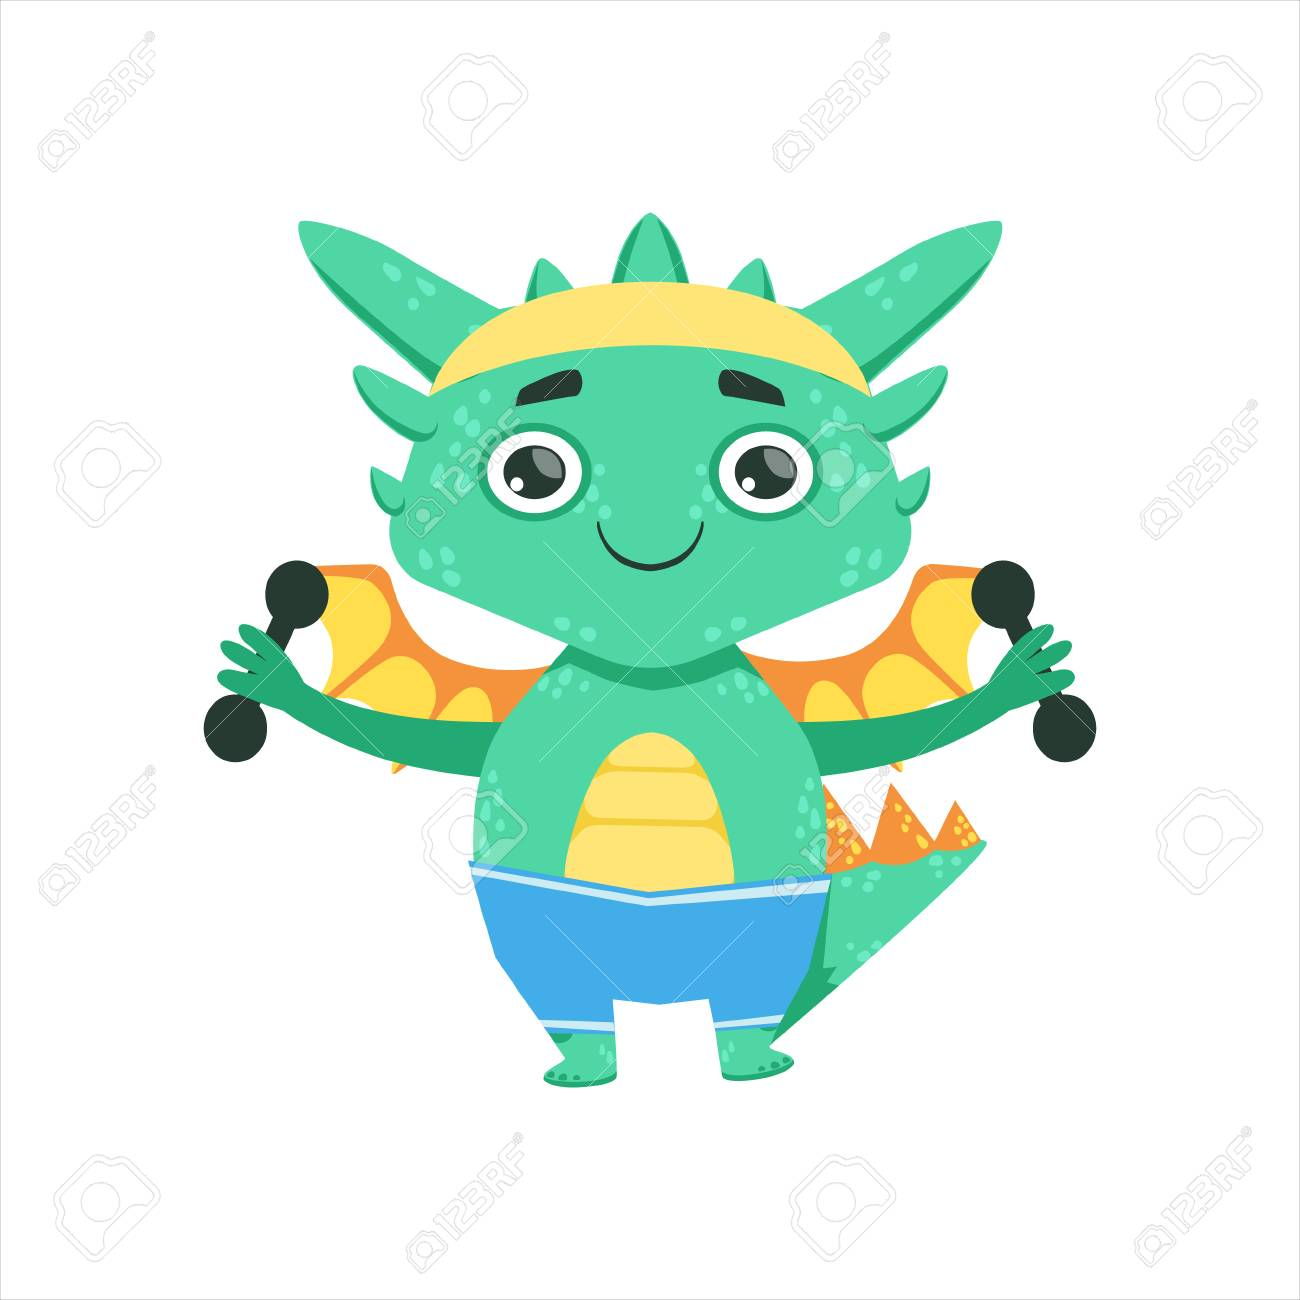 Little anime style baby dragon exercising with dumbbells cartoon character emoji illustration stock vector 68989169